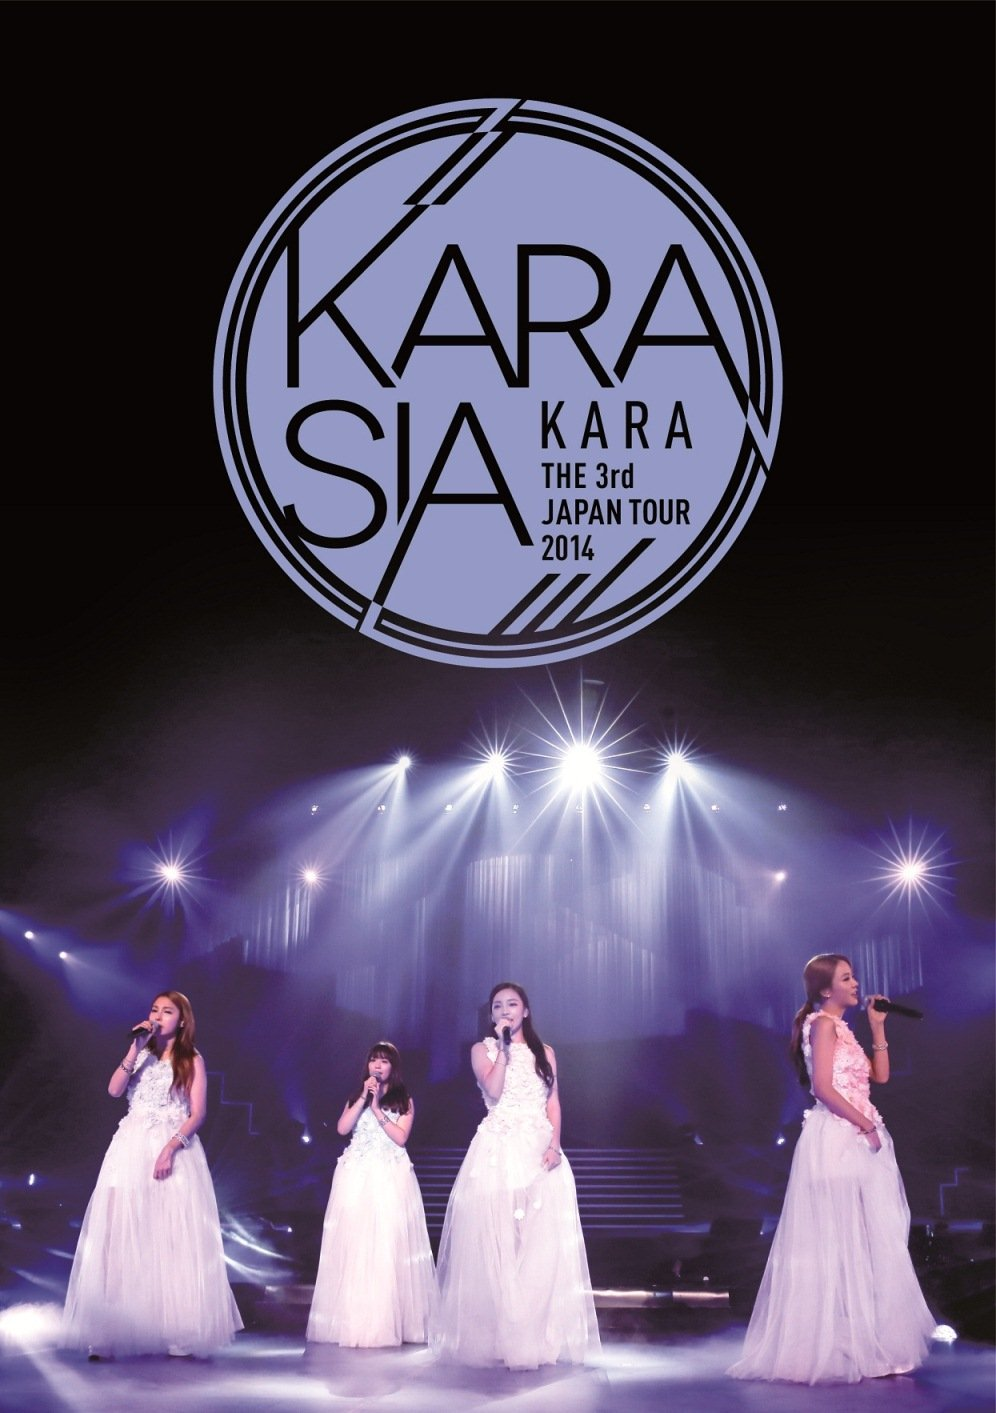 KARA Karasia 3rd Japan Tour 2014 BluRay 1080p Flac 2.0 x265 10bit